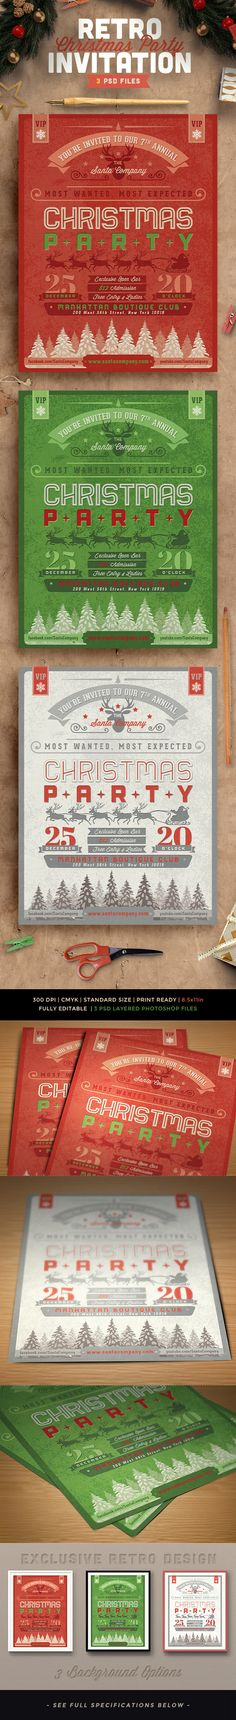 My Favorite Christmas Invitations and Christmas Cards Holiday - microsoft office invitation templates